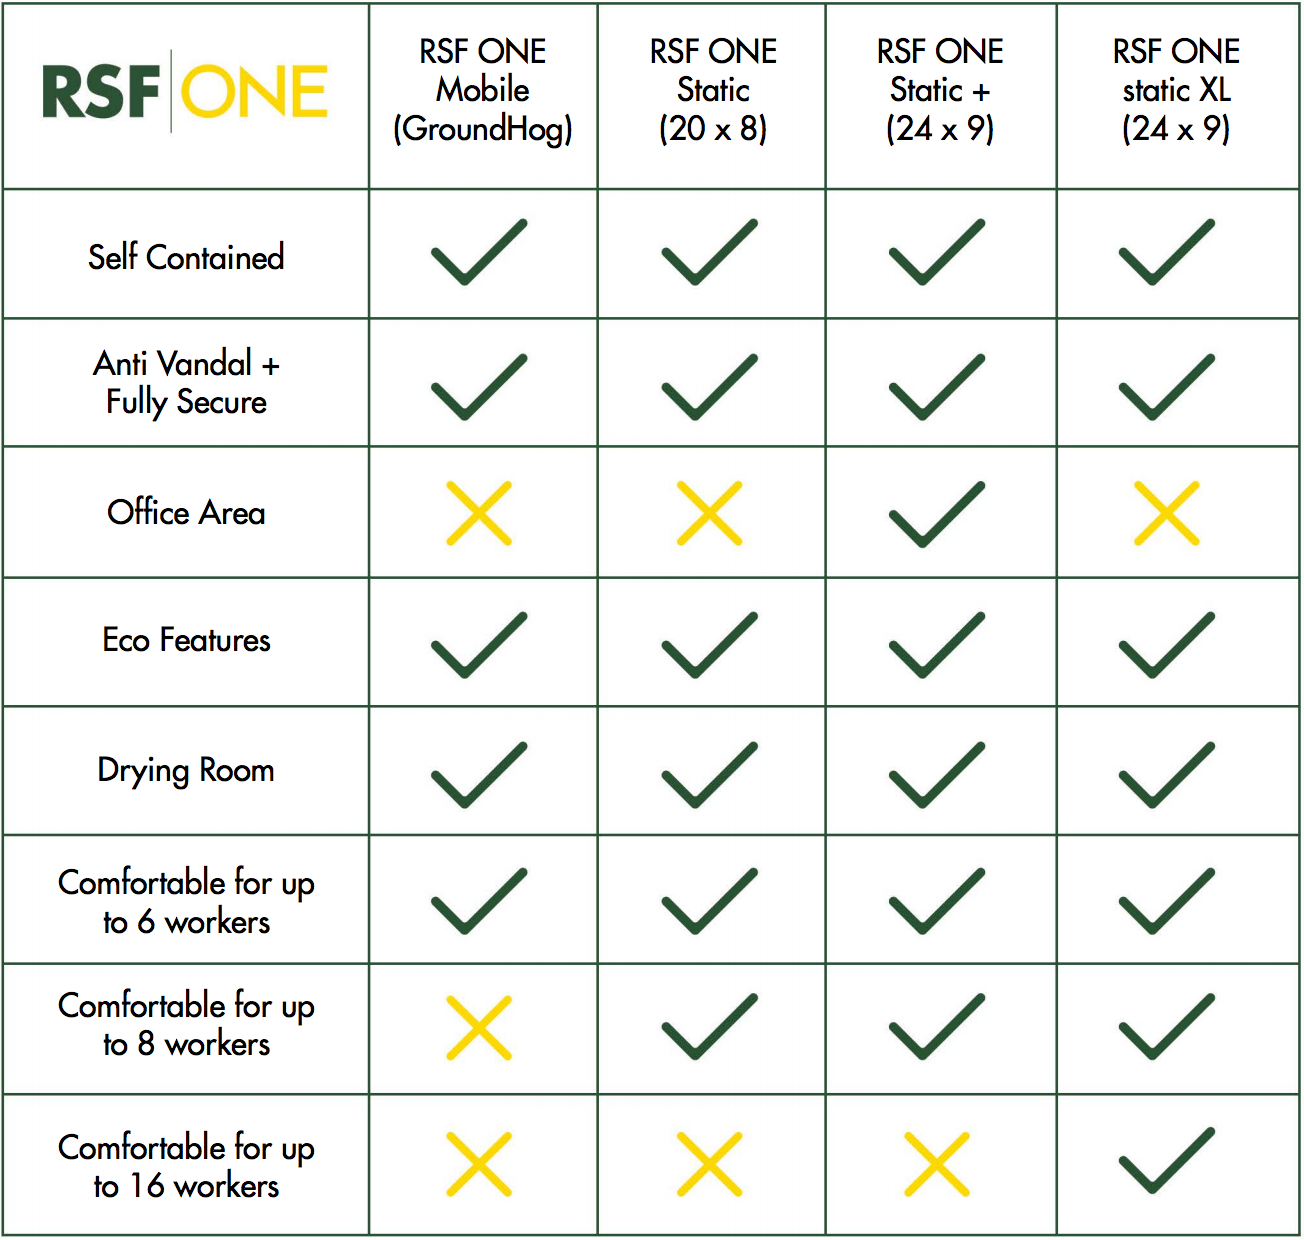 rsf static plus welfare unit comparison table